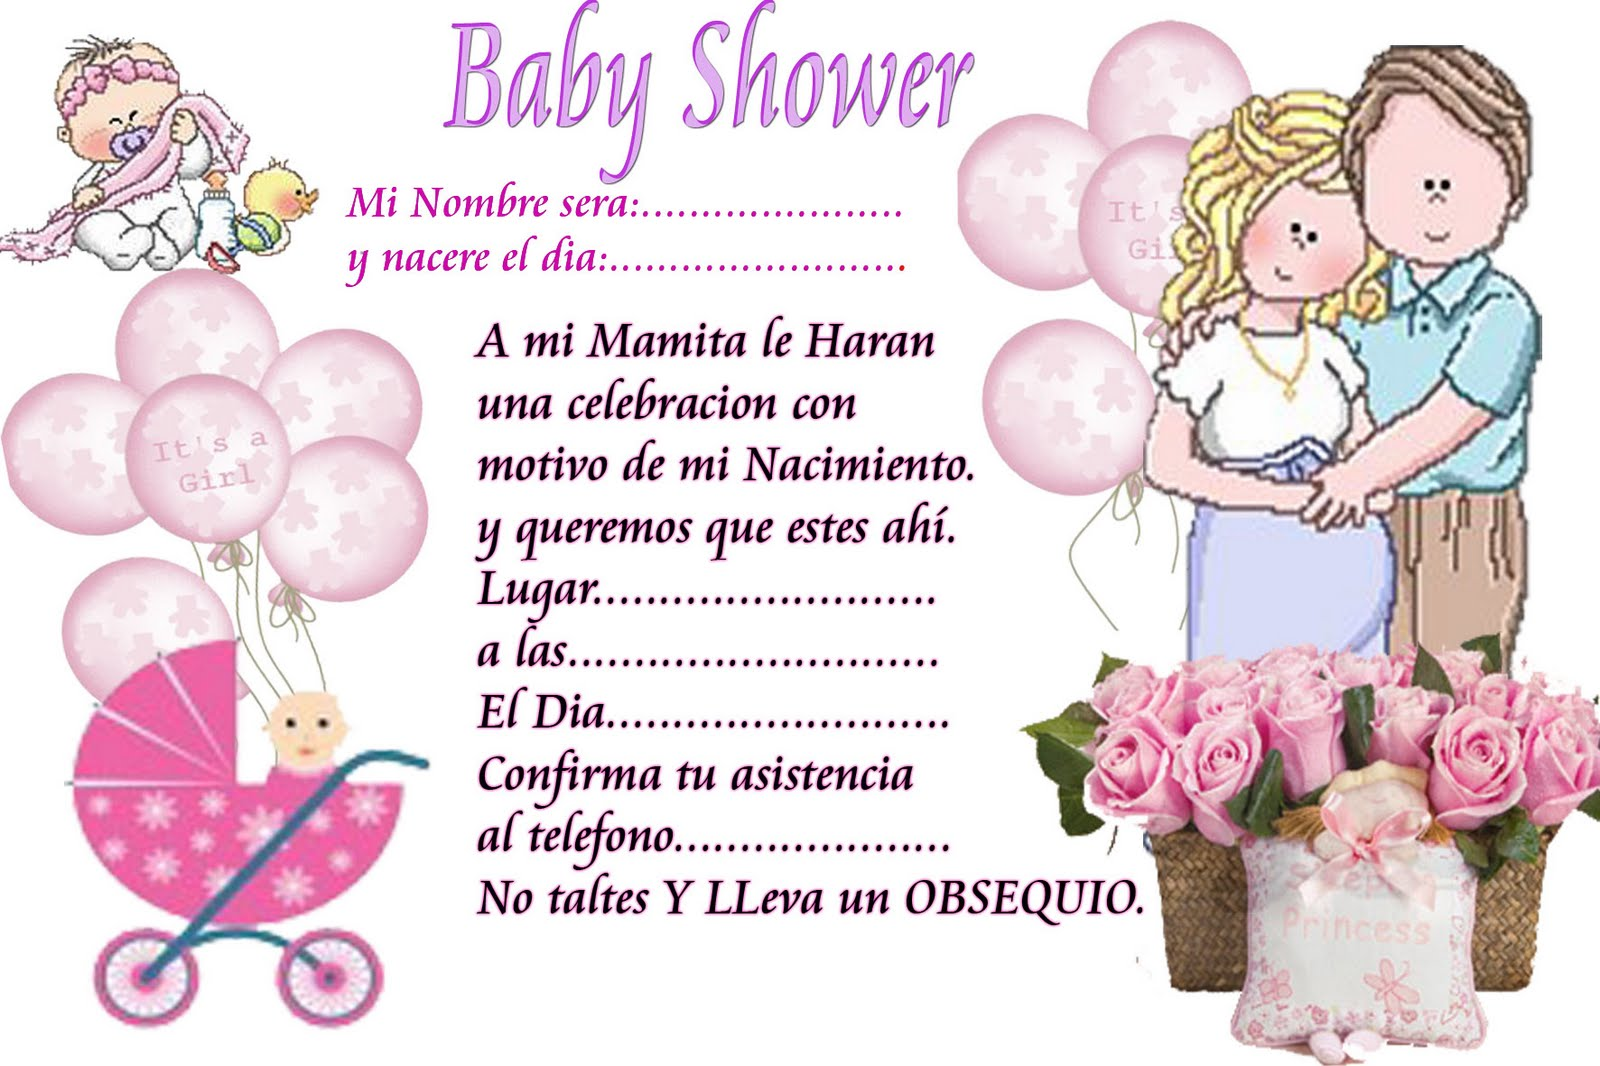 Baby Shower Recuerdos Para Imprimir ~ Baby shower food ideas gratis